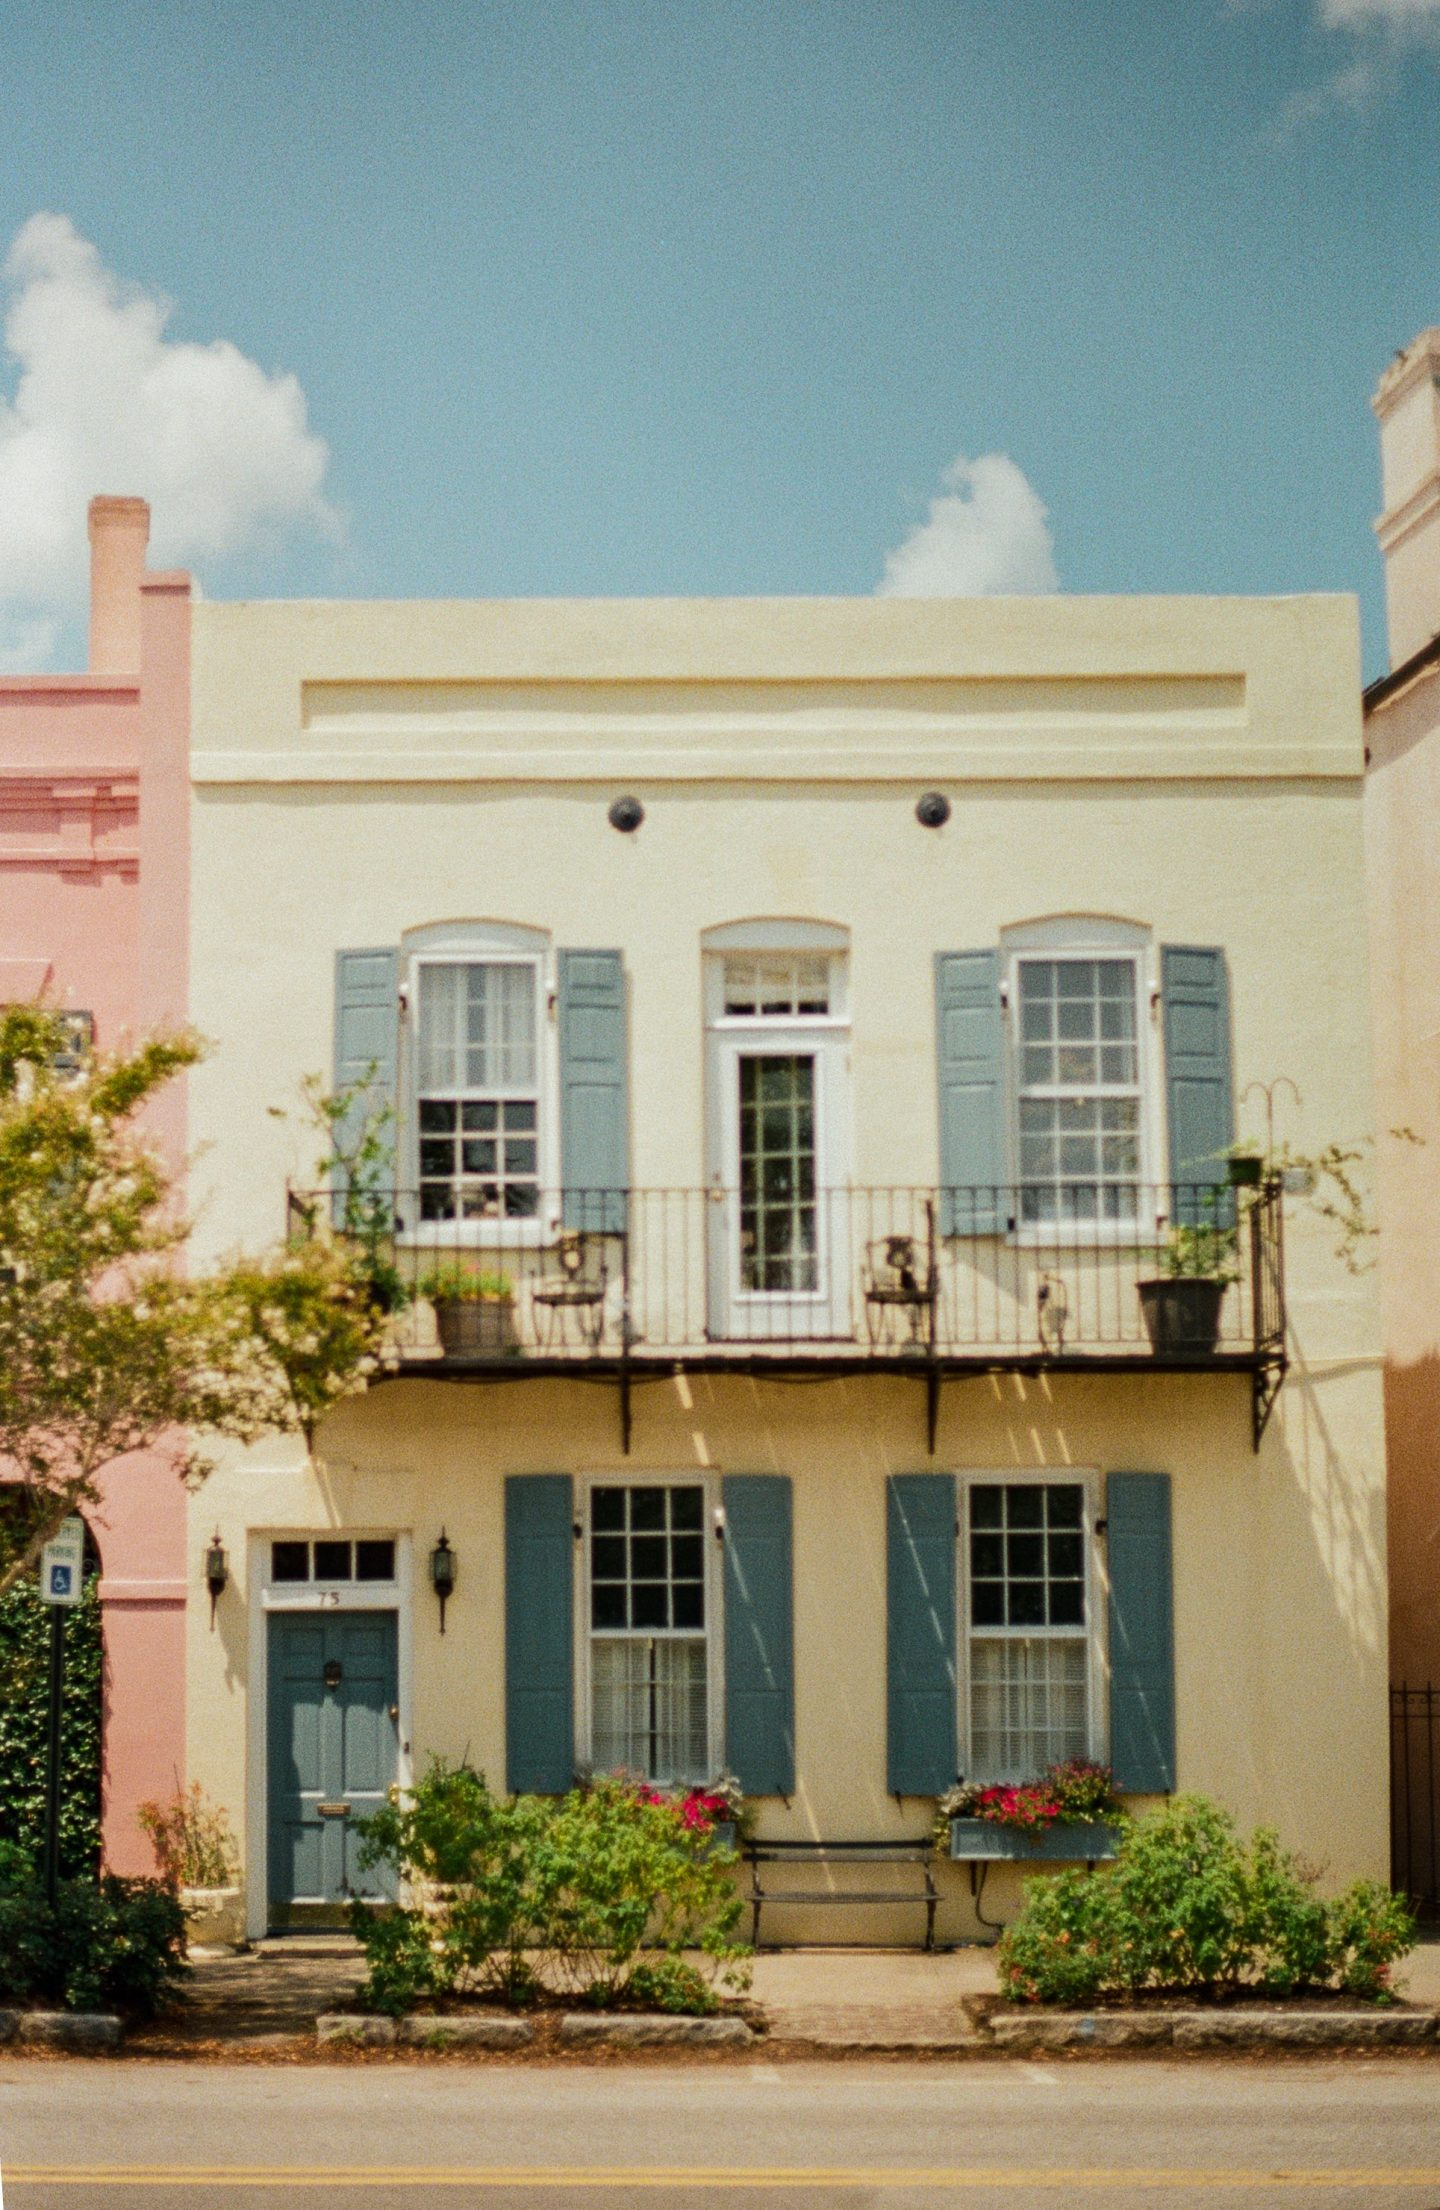 Charleston, South Carolina is in my top 10 favorite beautiful places in the US to visit.